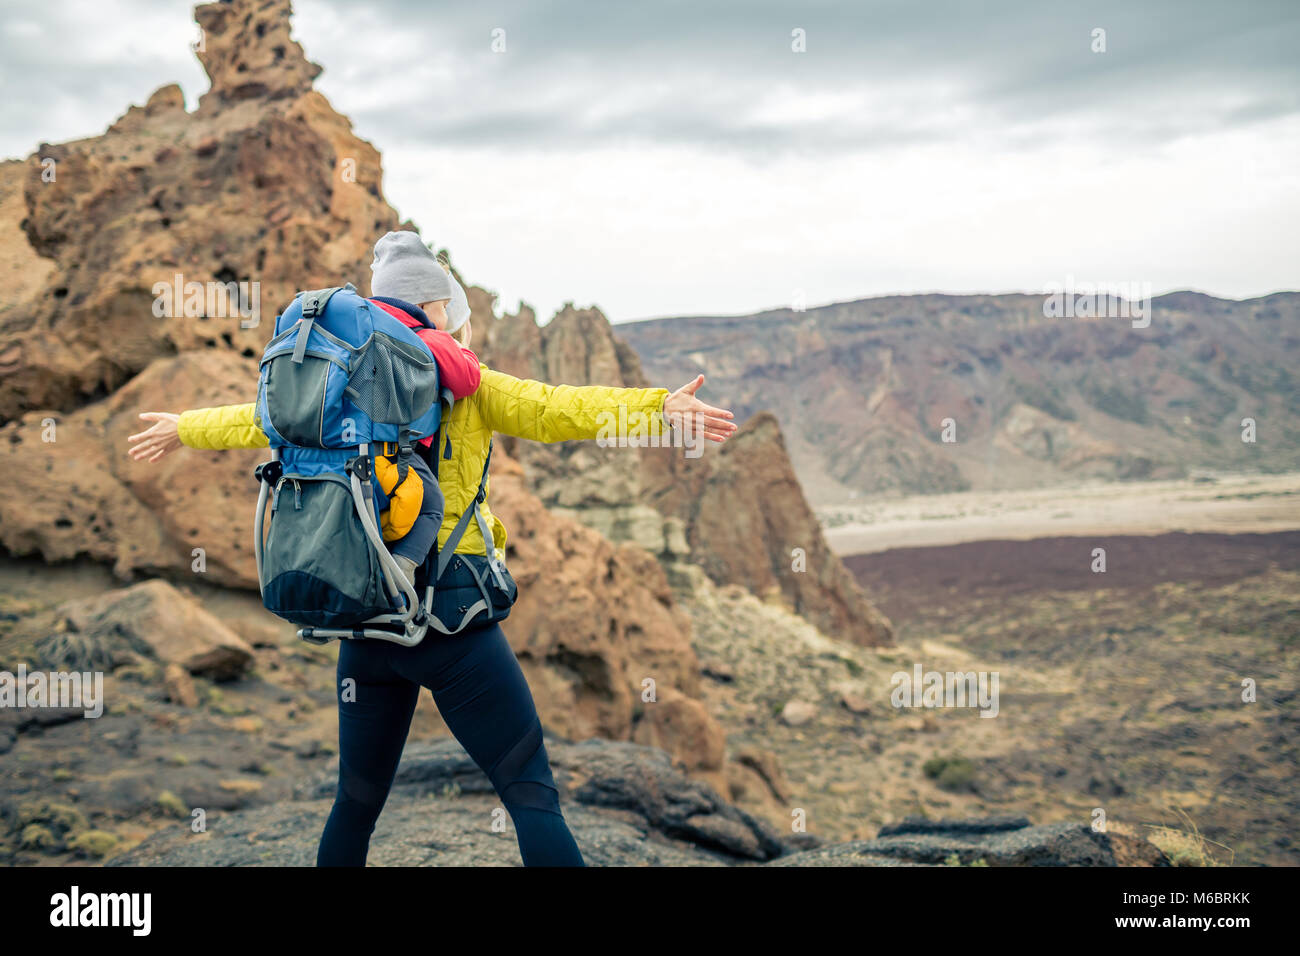 Super mom with baby boy travelling in backpack. Hiking adventure with child on autumn family trip in mountains. - Stock Image